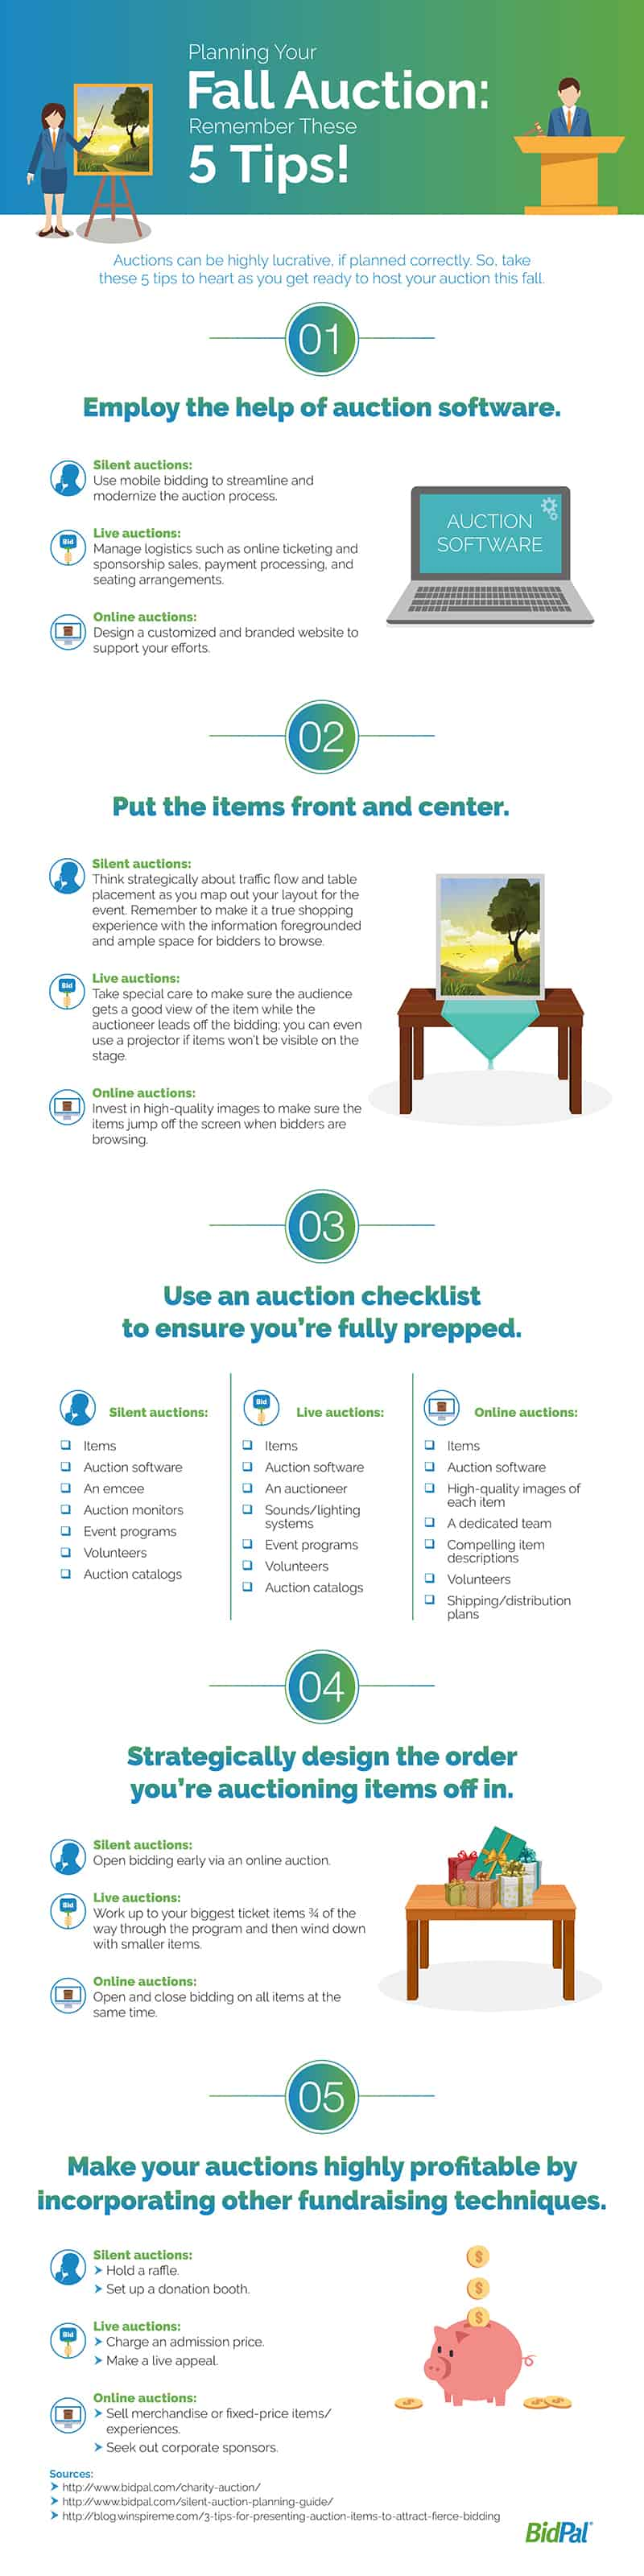 5 Tips for a Fall Auction 1. Employ the help of auction software 2. put the items front and center 3. use an auction checklist to ensure you're fully prepped 4. strategically design the order you're auctioning items off in 5. make your auctions highly profitable by incorporating other funding techniques